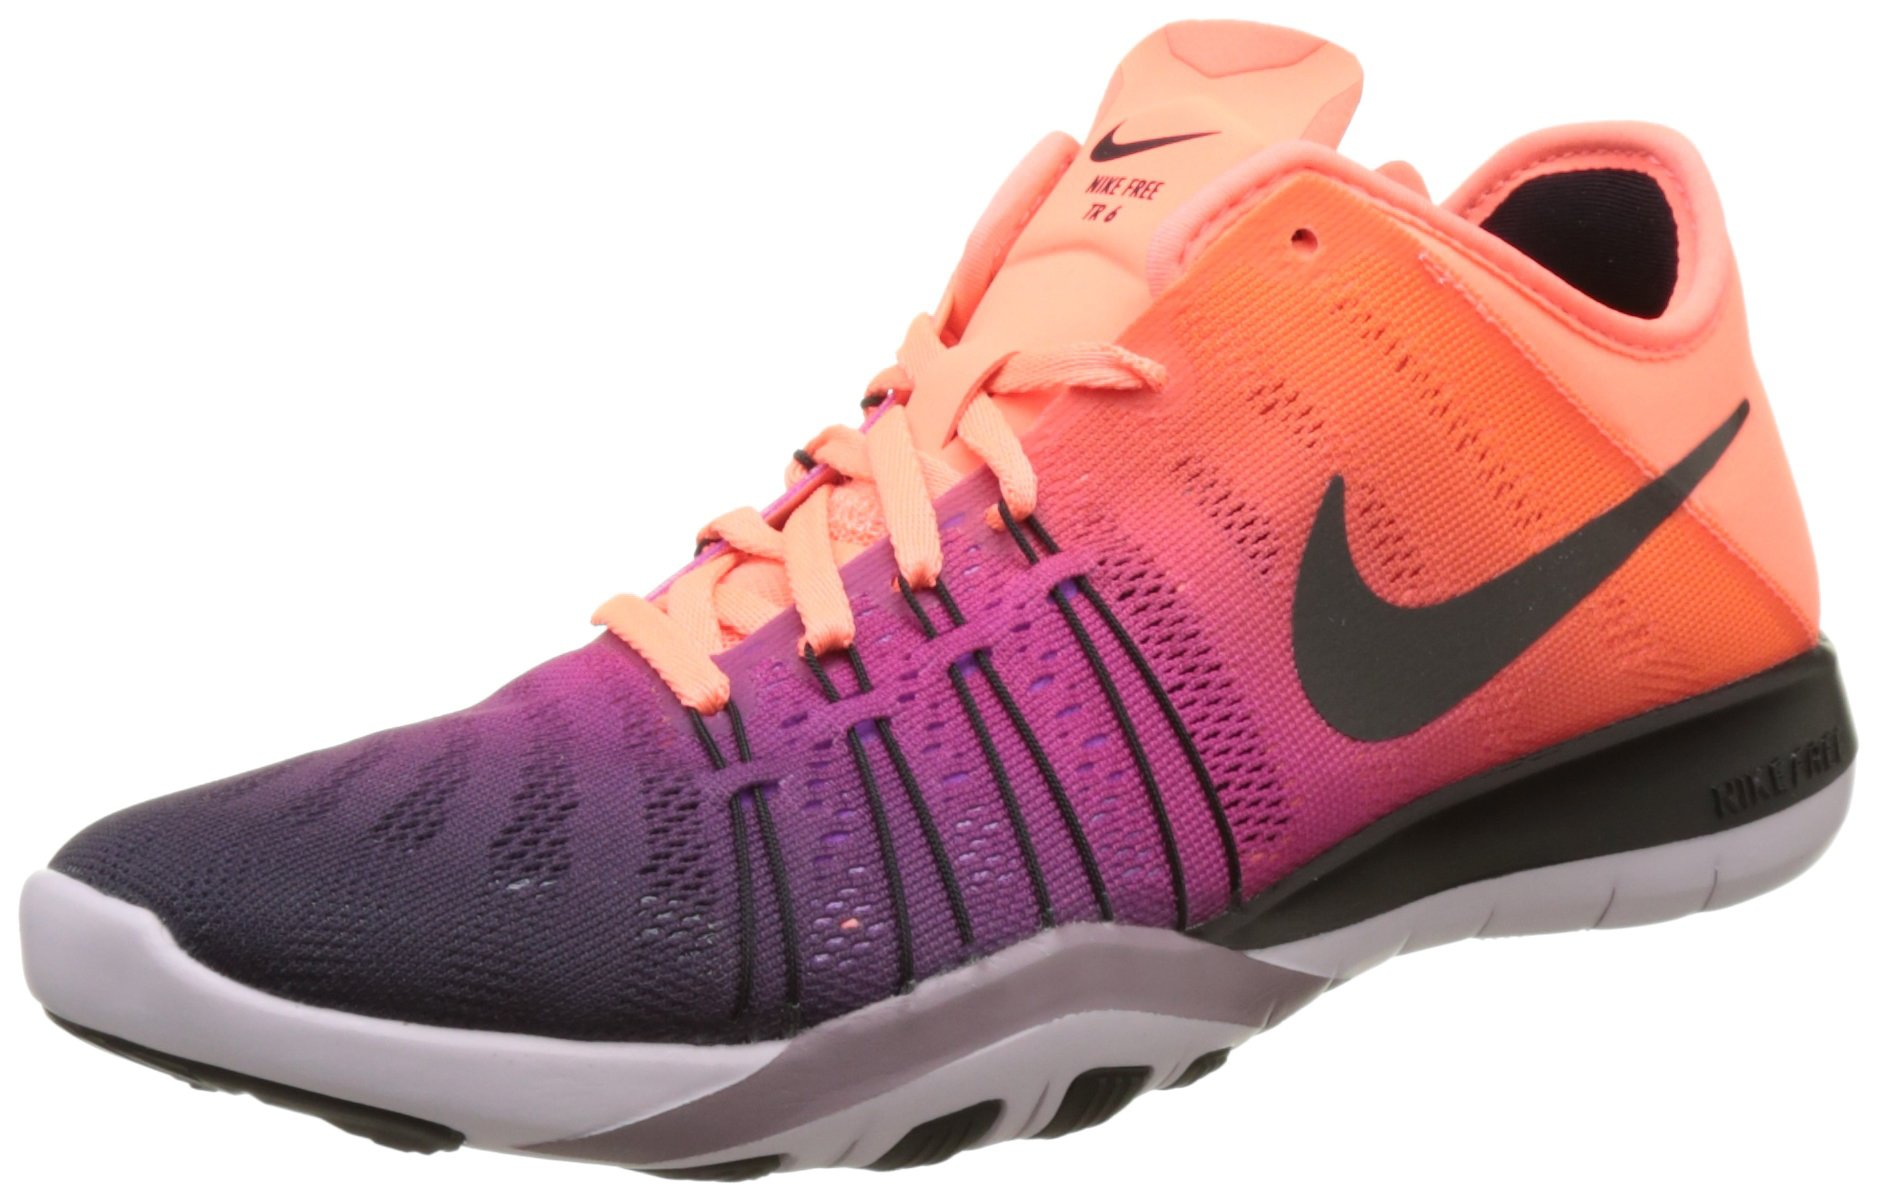 cf7431b657cc Galleon - Nike Women s Free TR 6 Spectrum Training Shoe Bright Mango Black Bleached  Lilac Size 7.5 M US